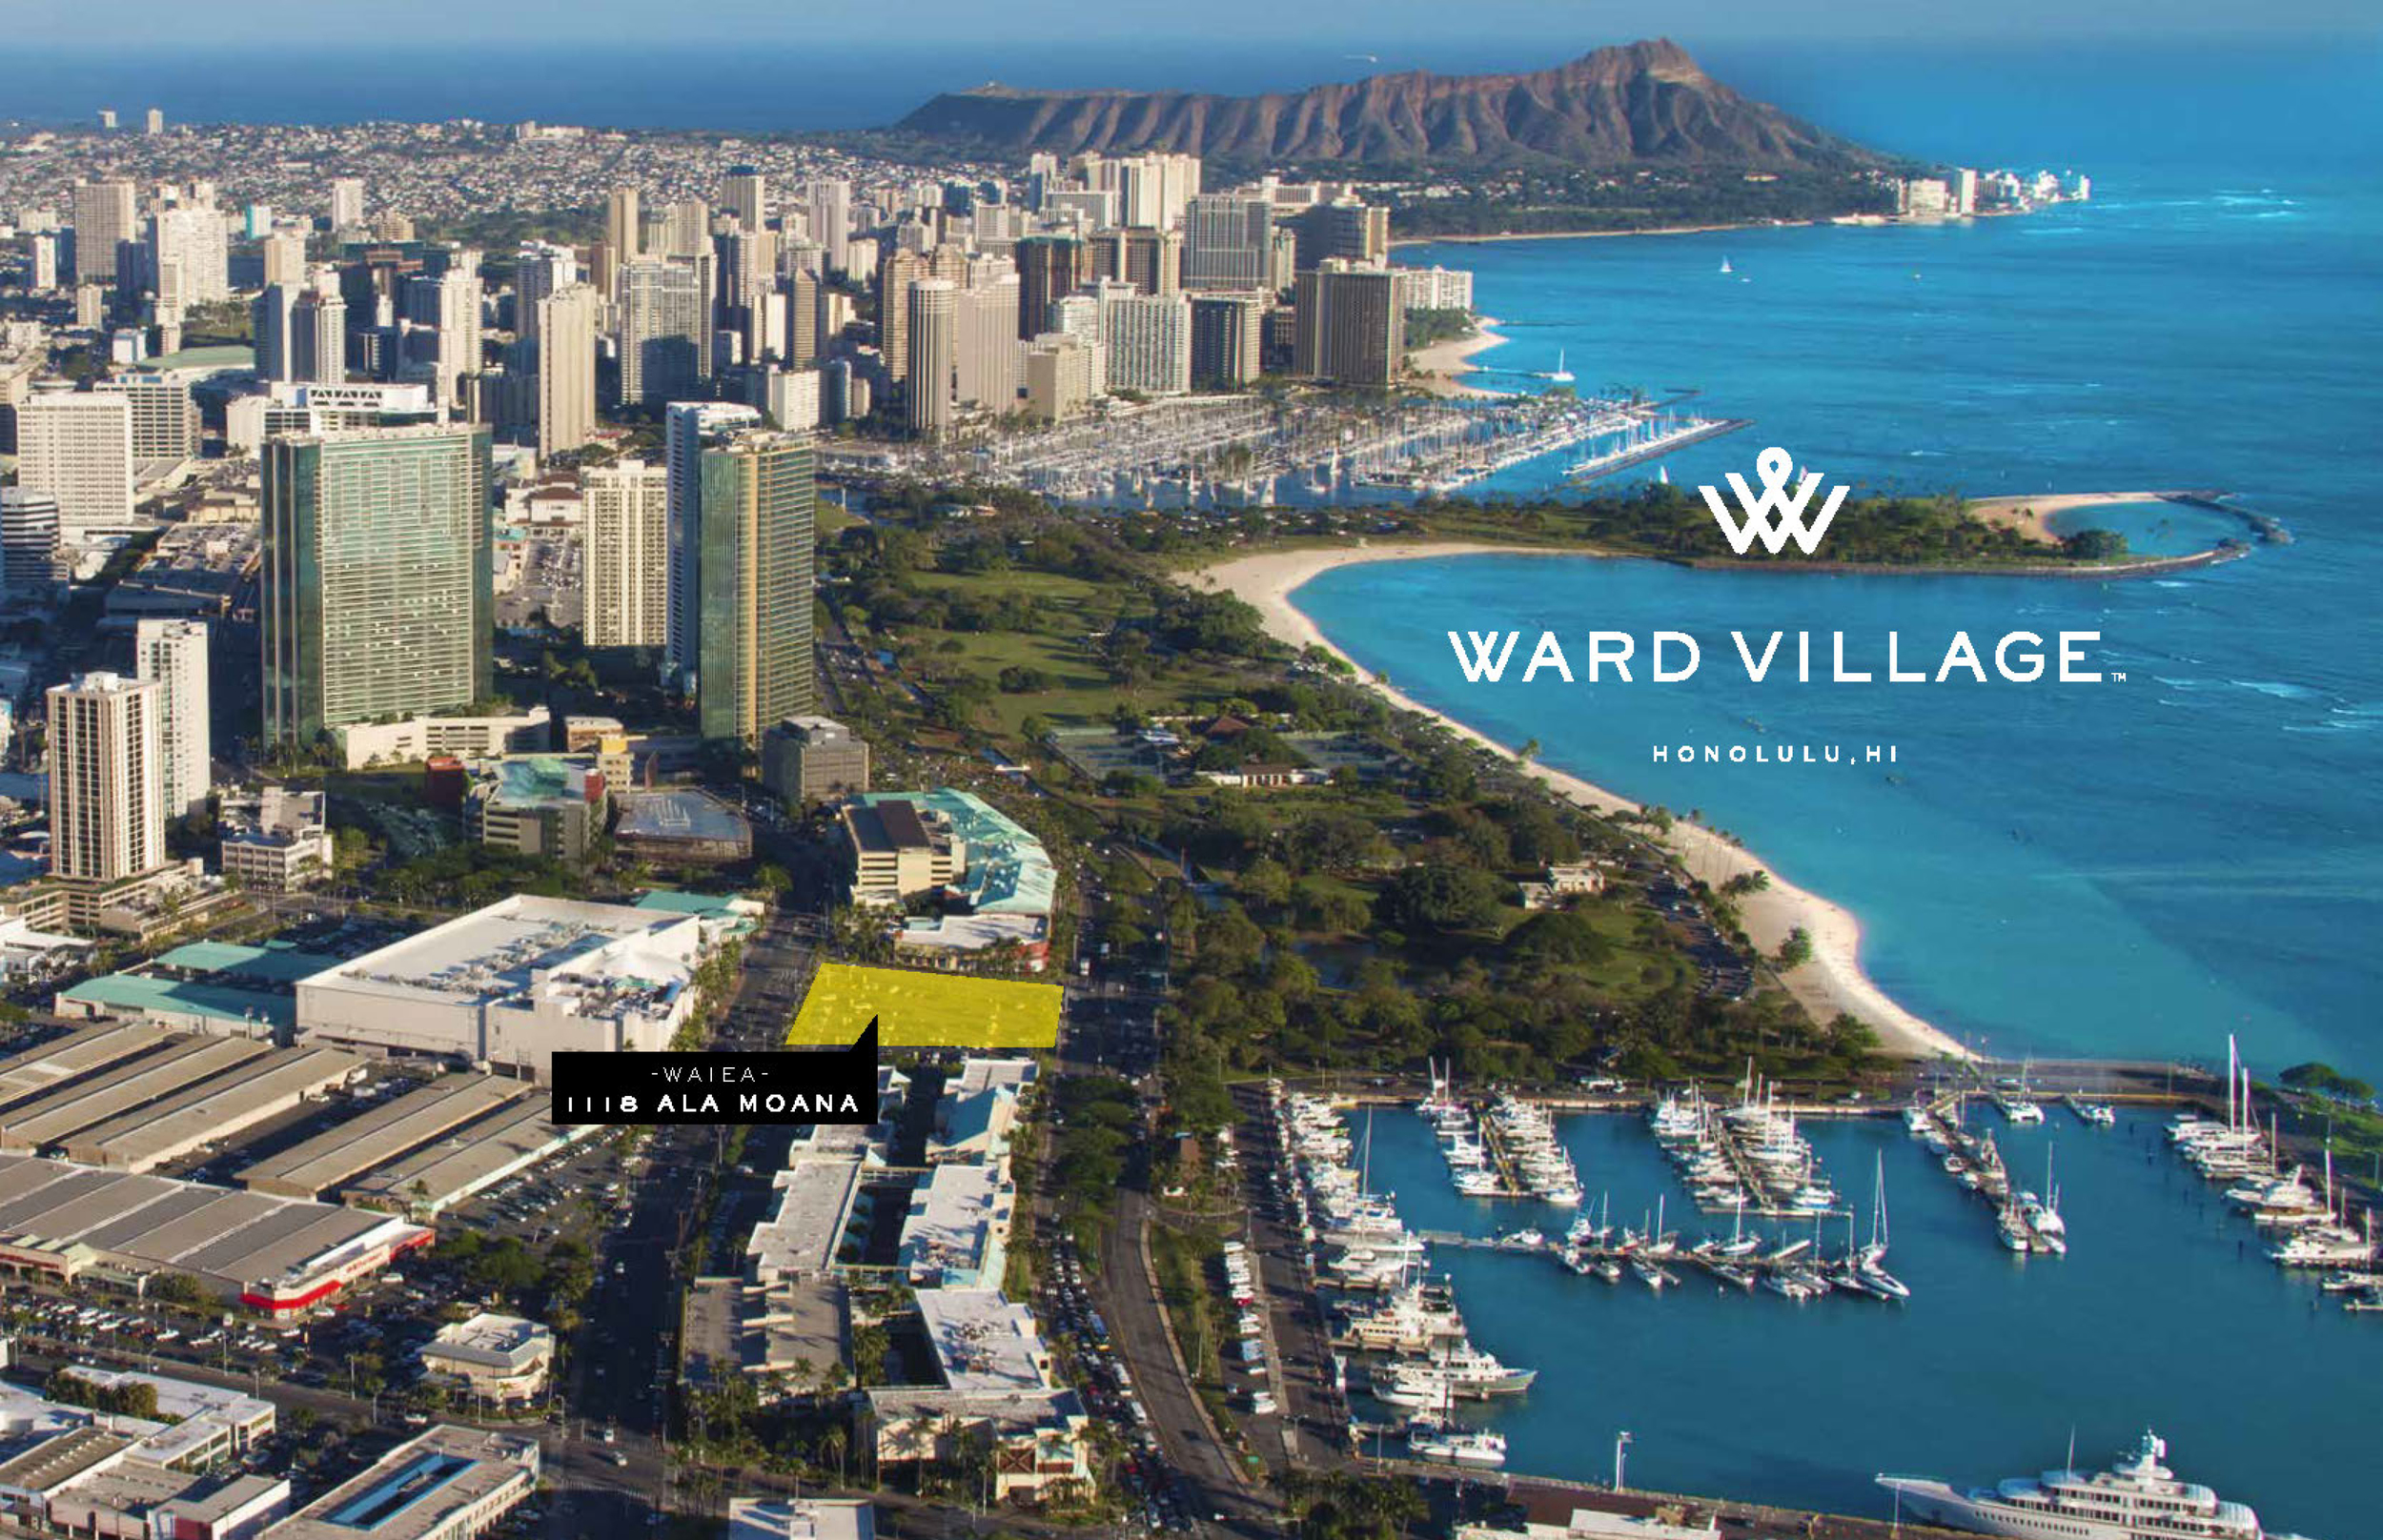 Howard Hughes Corporation moves forward with first phase of Ward Village